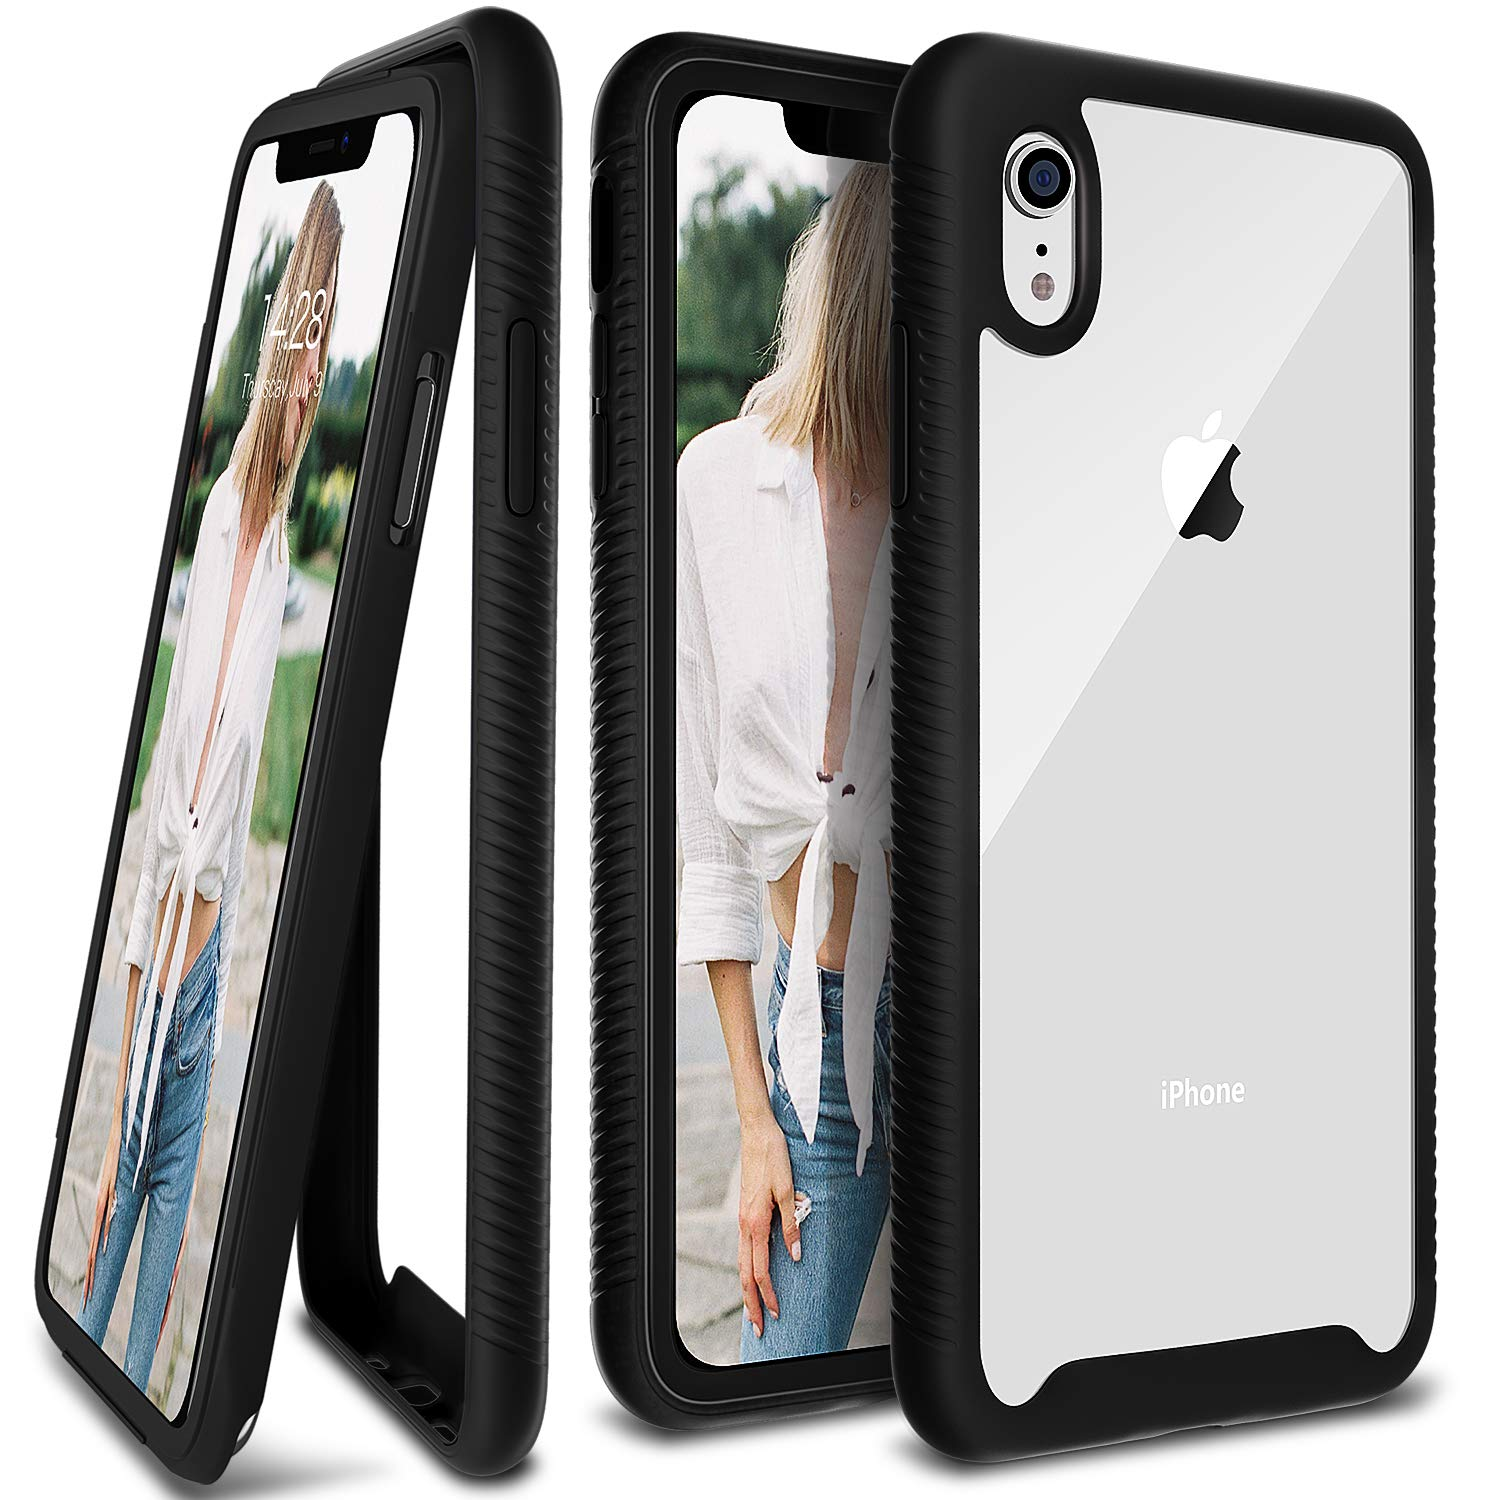 iPhone Xr Case, Ansiwee Scratch Resistant 360 Full Body Phone Case Hard Clear Back Shock Drop Proof Impact Resist Extreme Durable Protective Cover ...